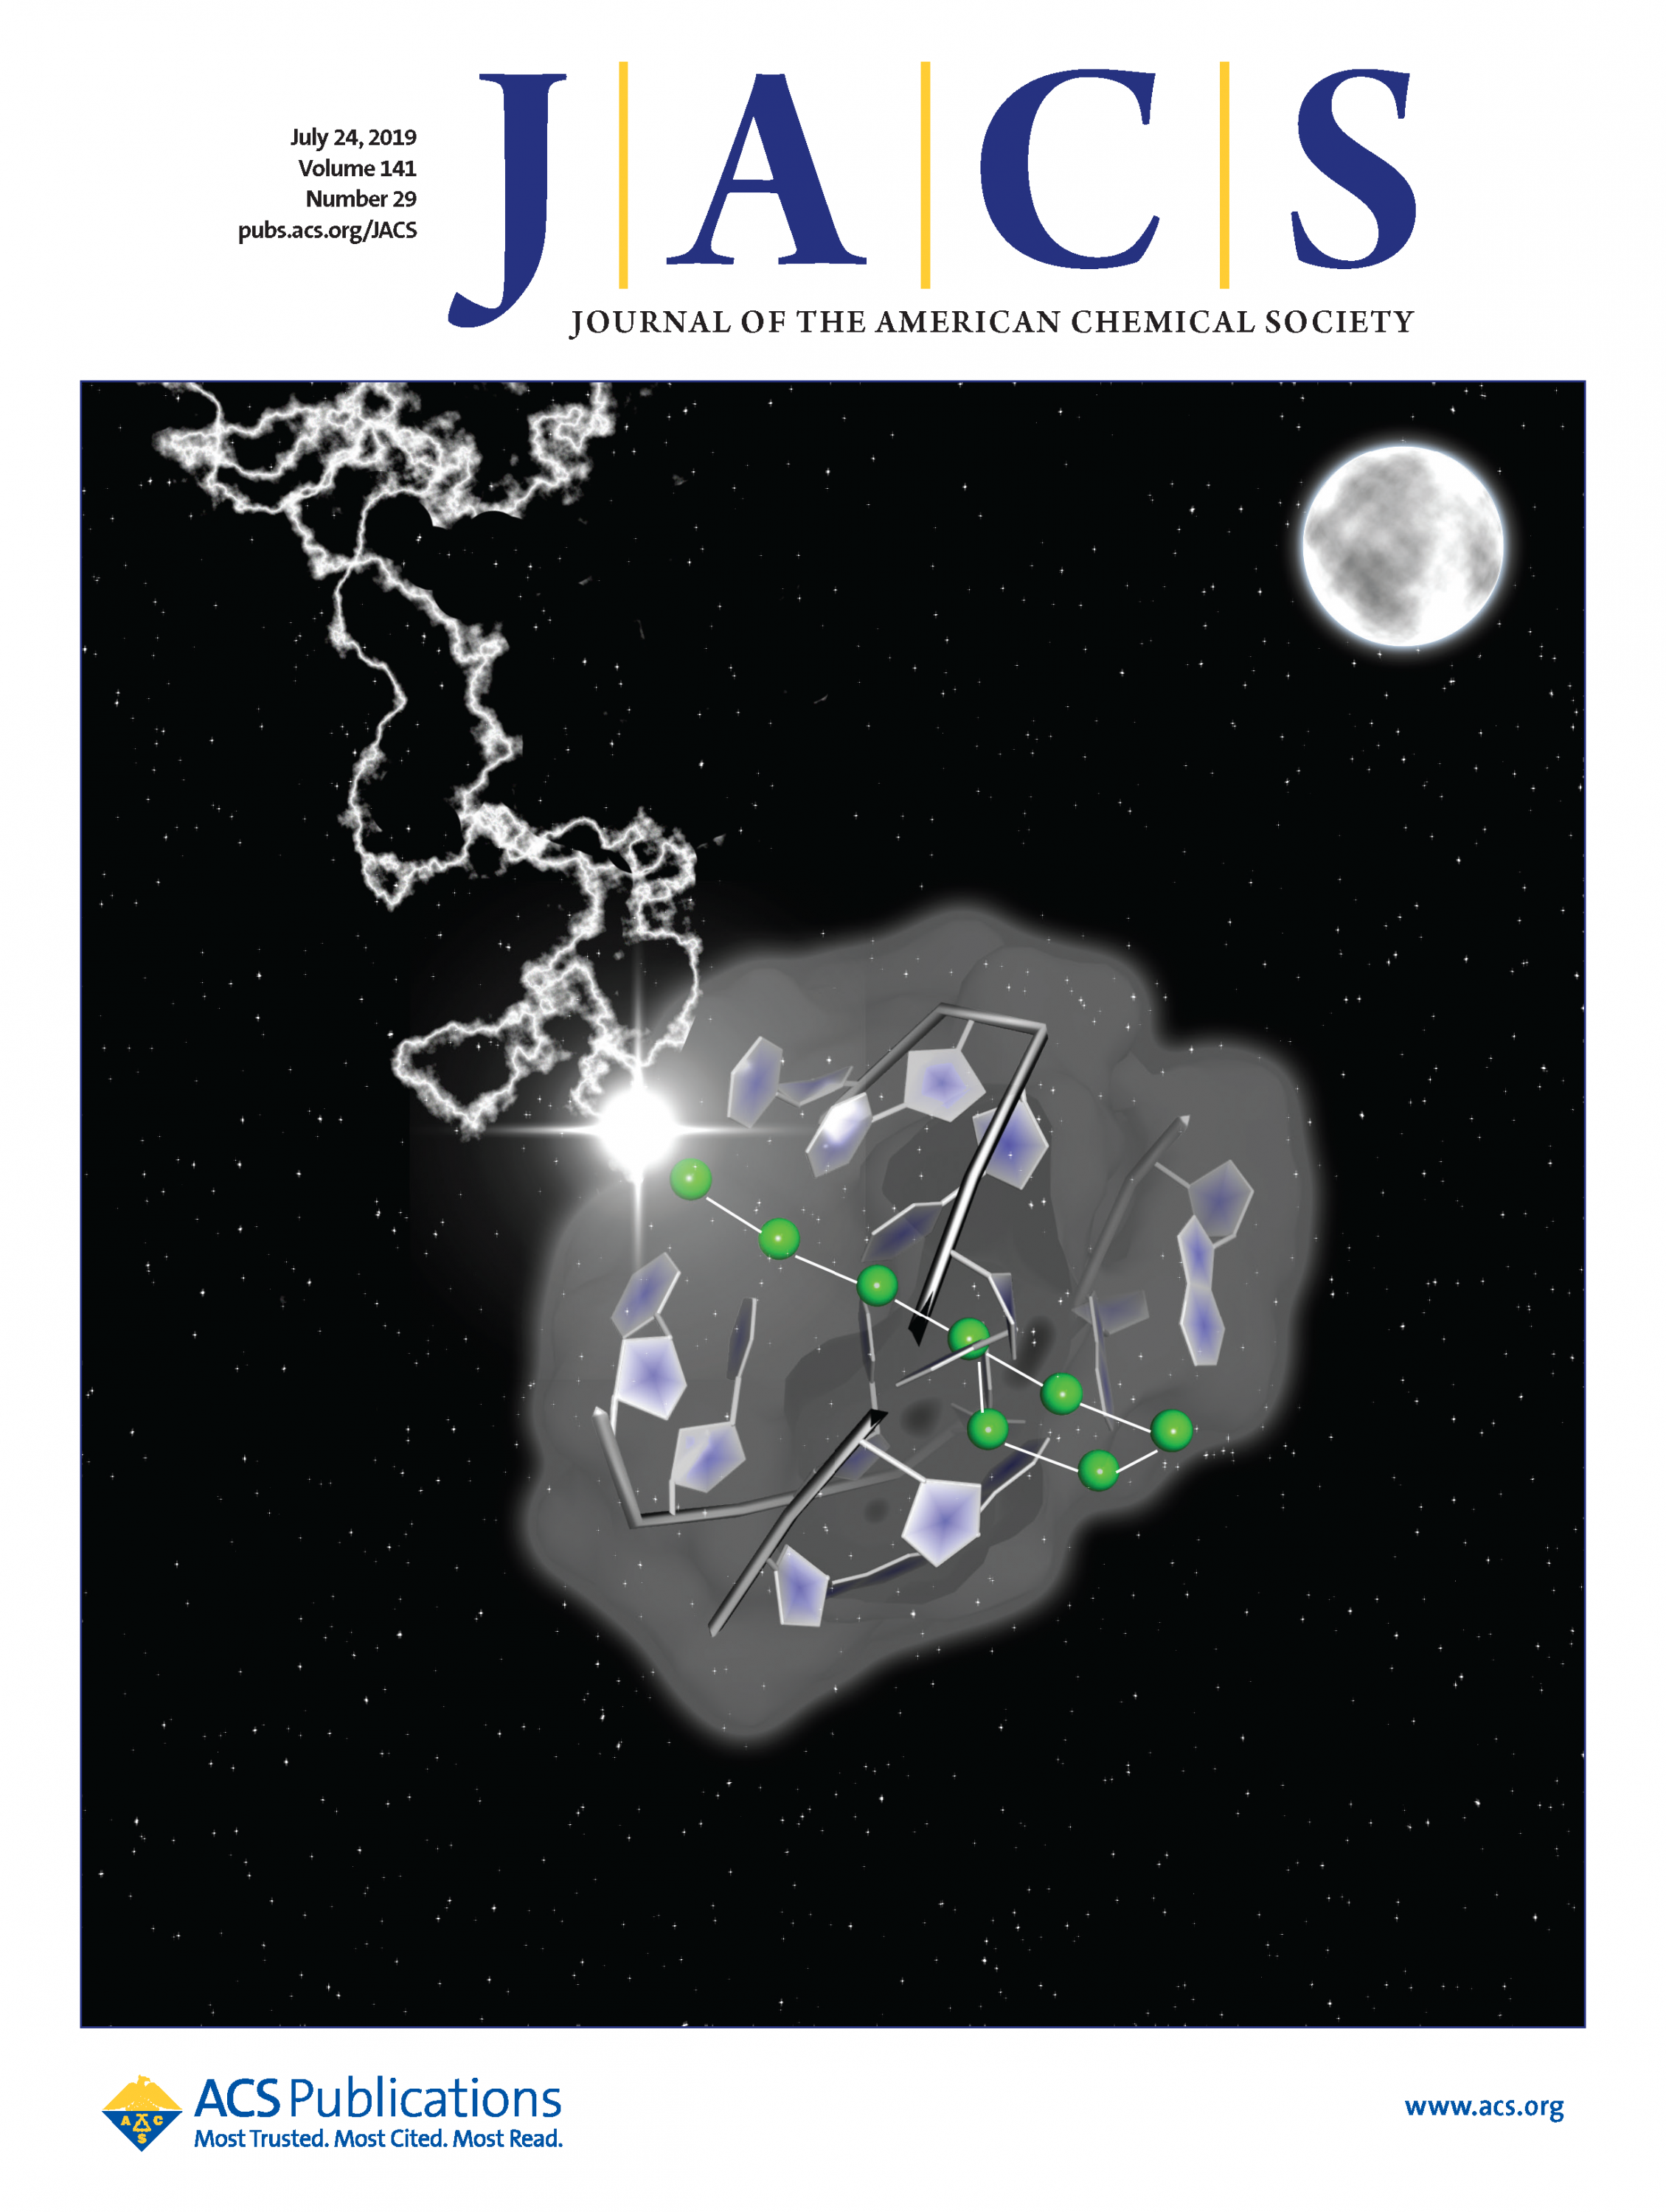 July 24, 2019, JACS cover features Ag8 cluster in Big Dipper array (Credit American Chemical Society)